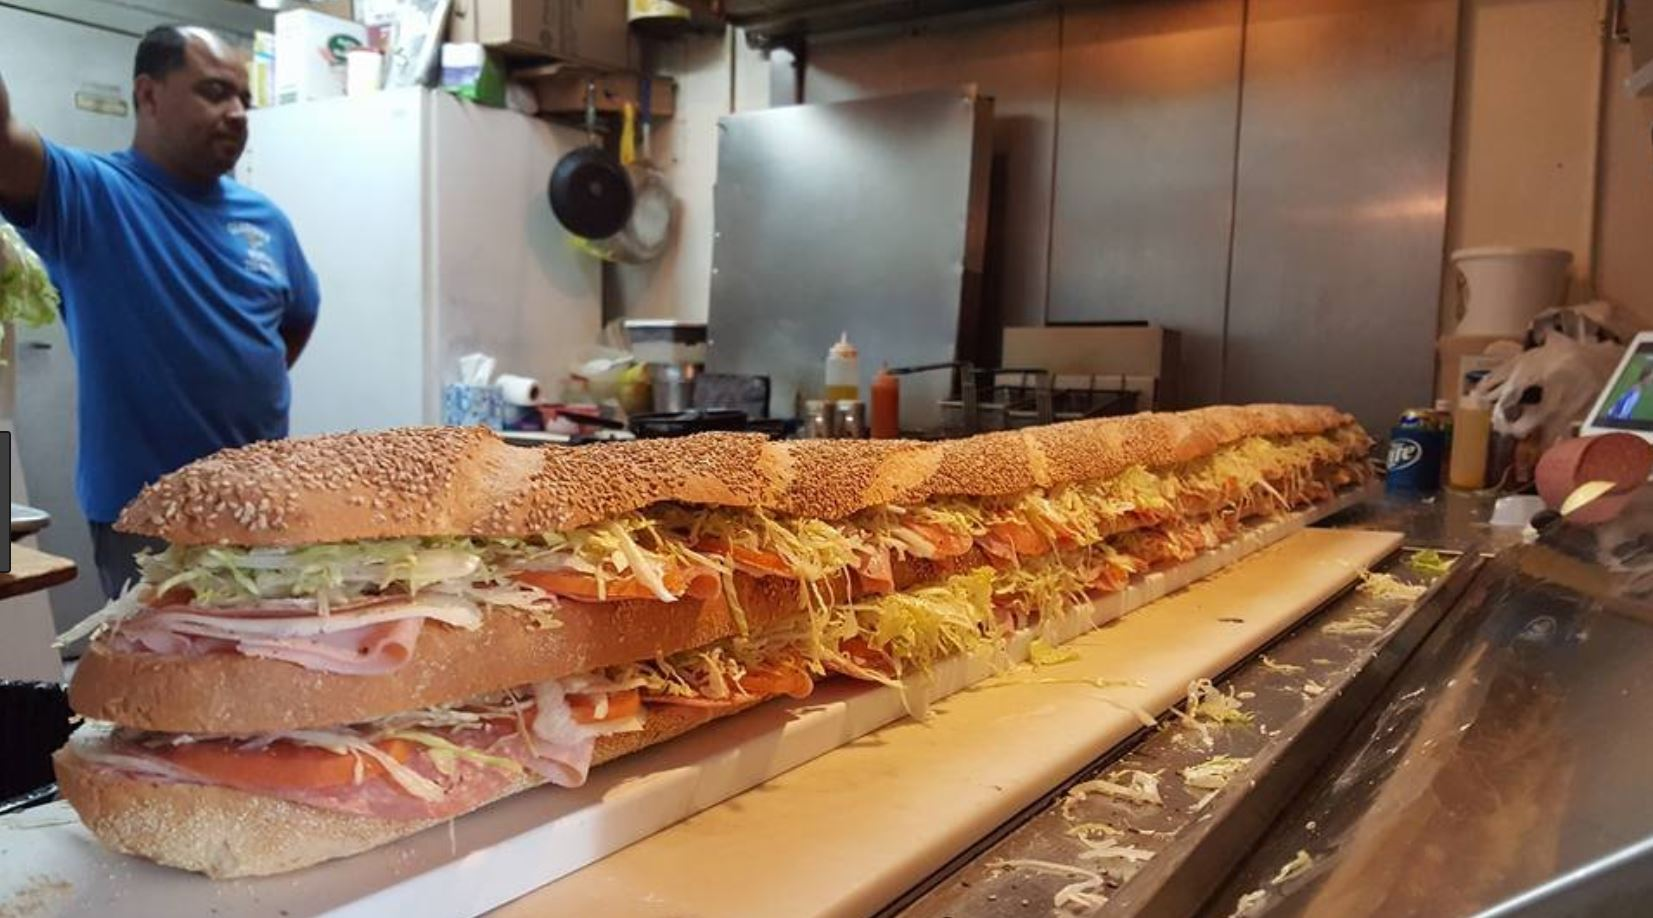 Six Foot Sub by Gianni's Pizzeria, 1504 Roosevelt Ave, Carteret, NJ 07008. Click the pic to visit YELP.